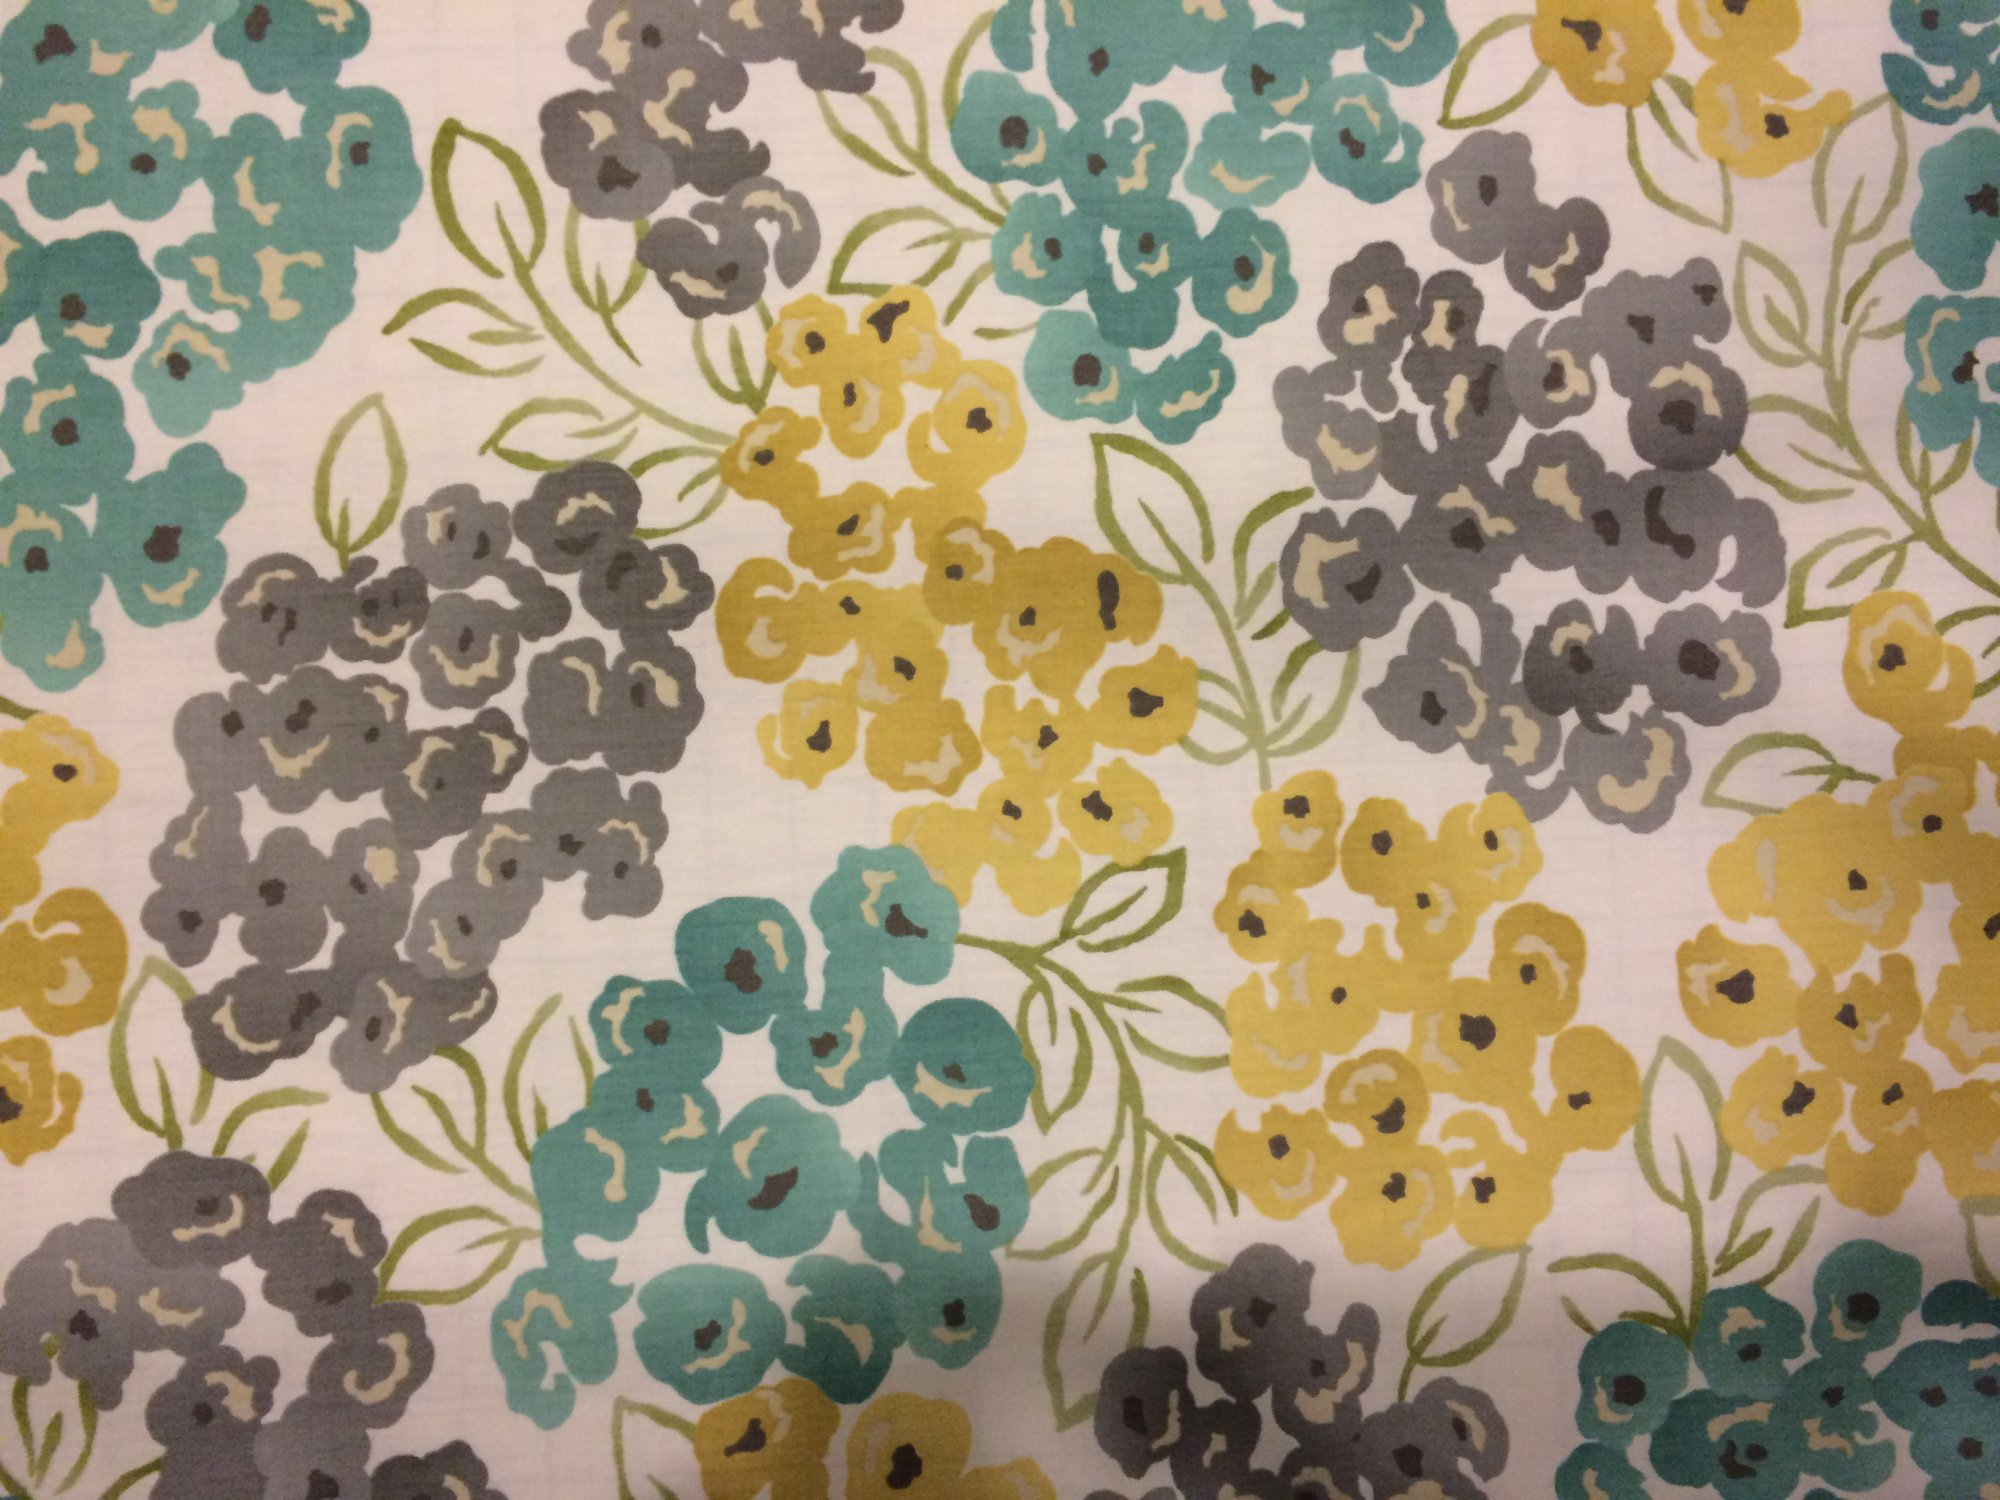 GREAT BOARD - ASSORTED  Click for more fabric selections